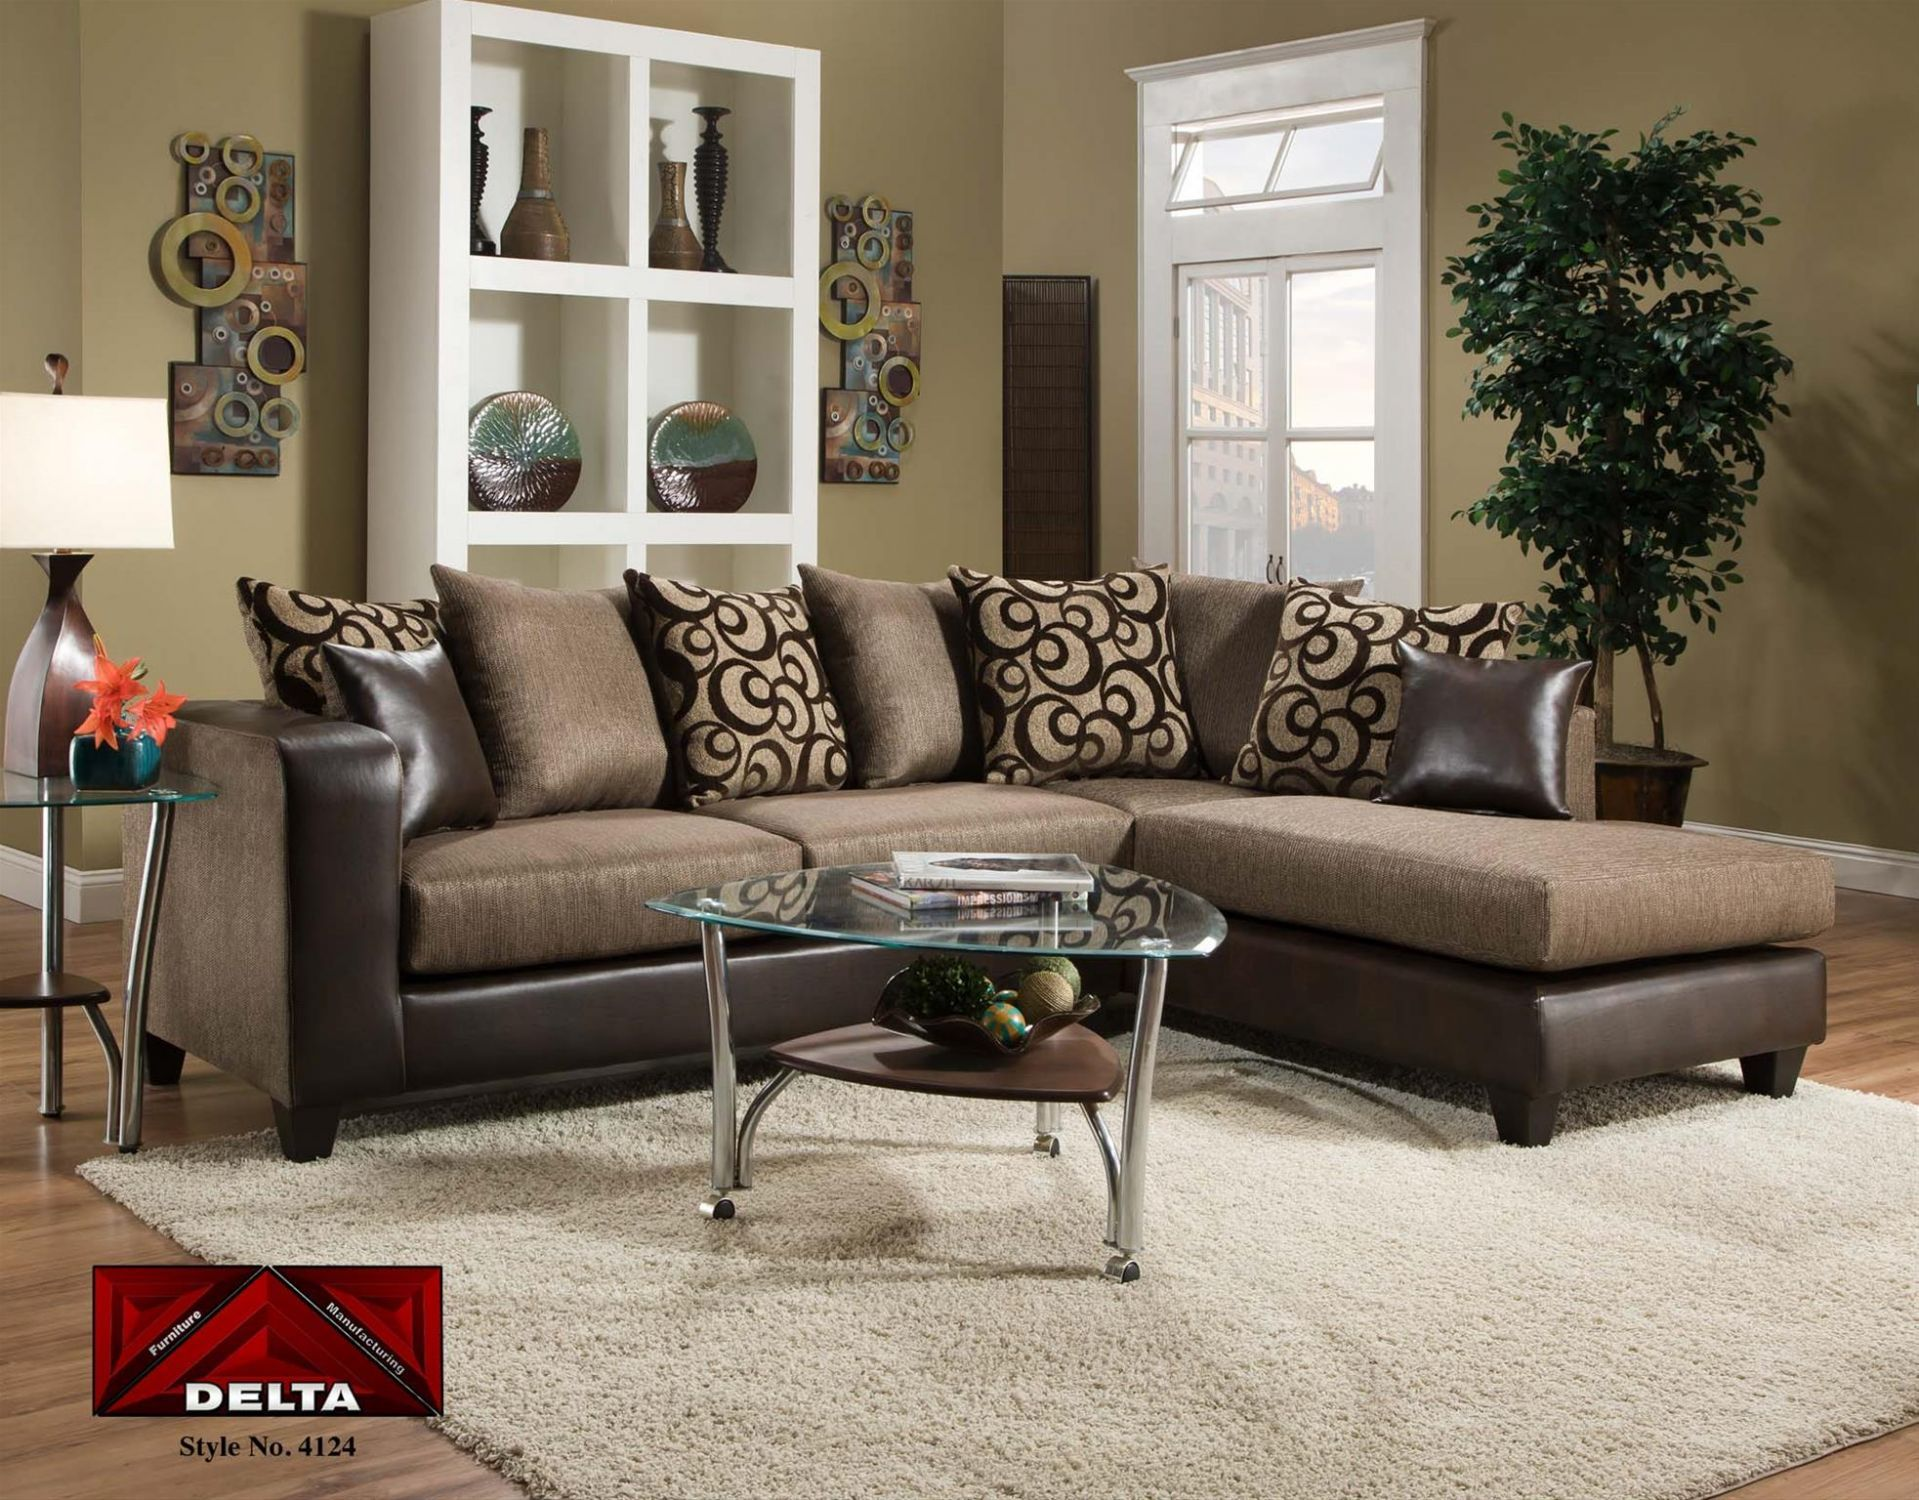 Update your living room with our Designer Chaise Sectional